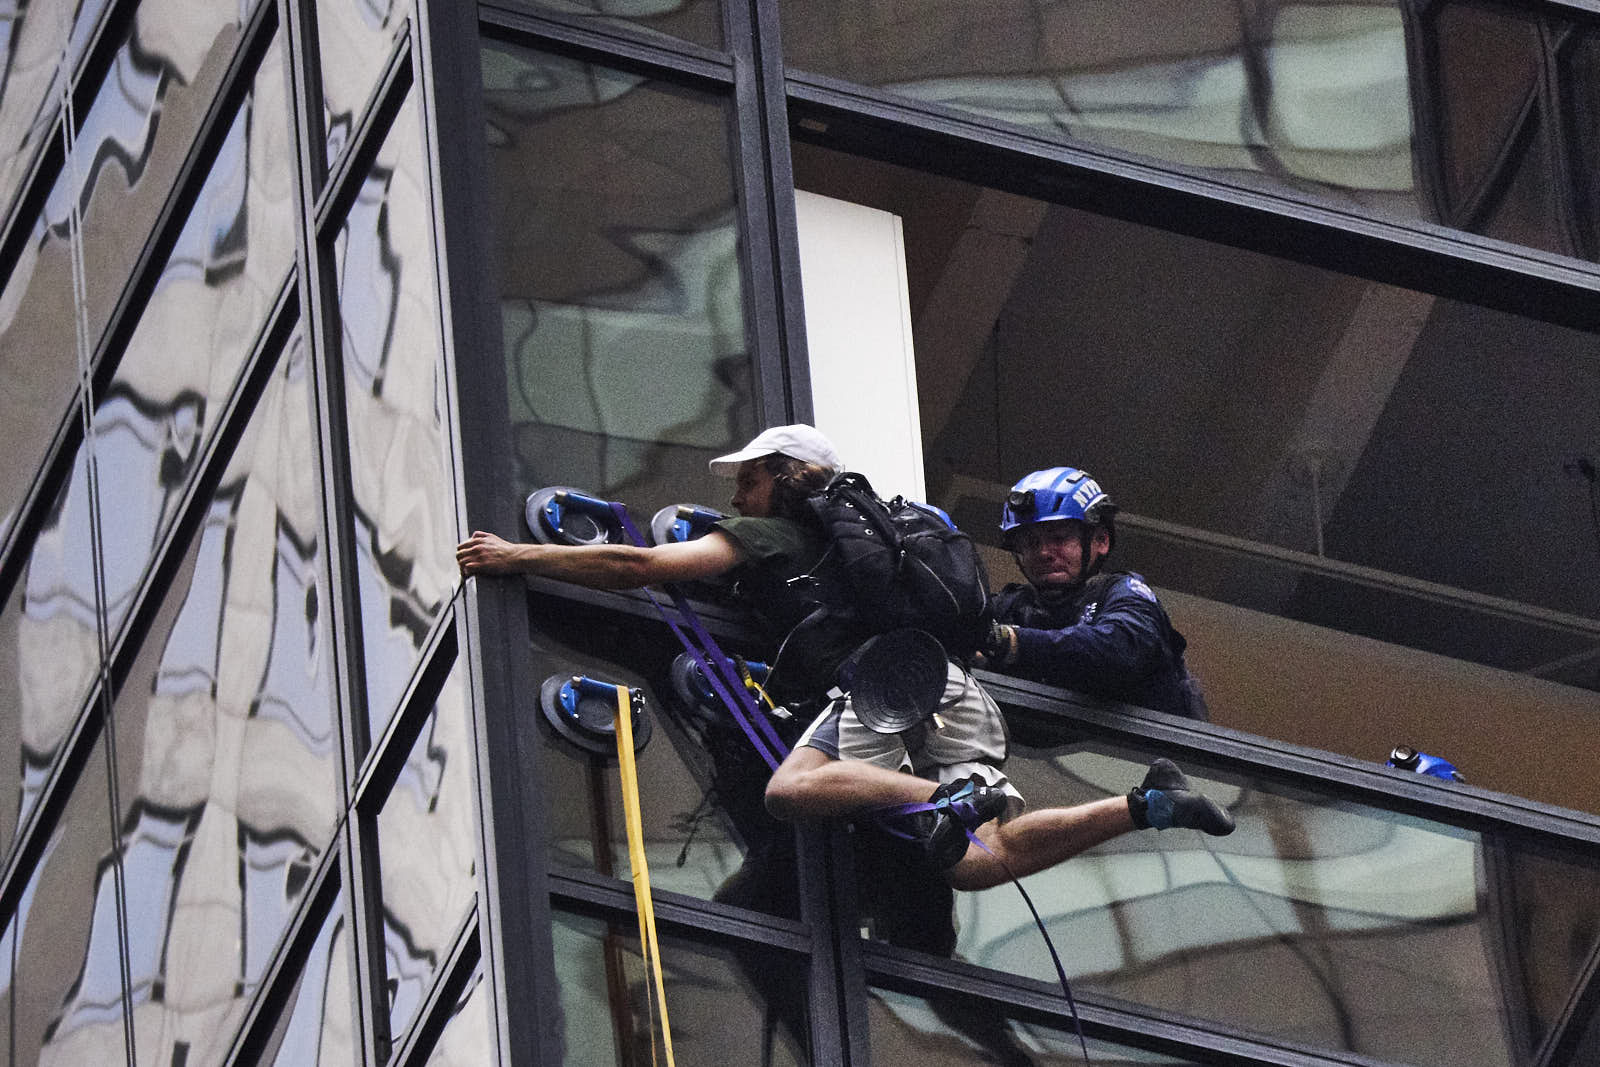 New York Police Department officers apprehend Stephen Rogata after he scaled Trump Tower with suction cups on Wednesday, August 10, 2016 in New York.